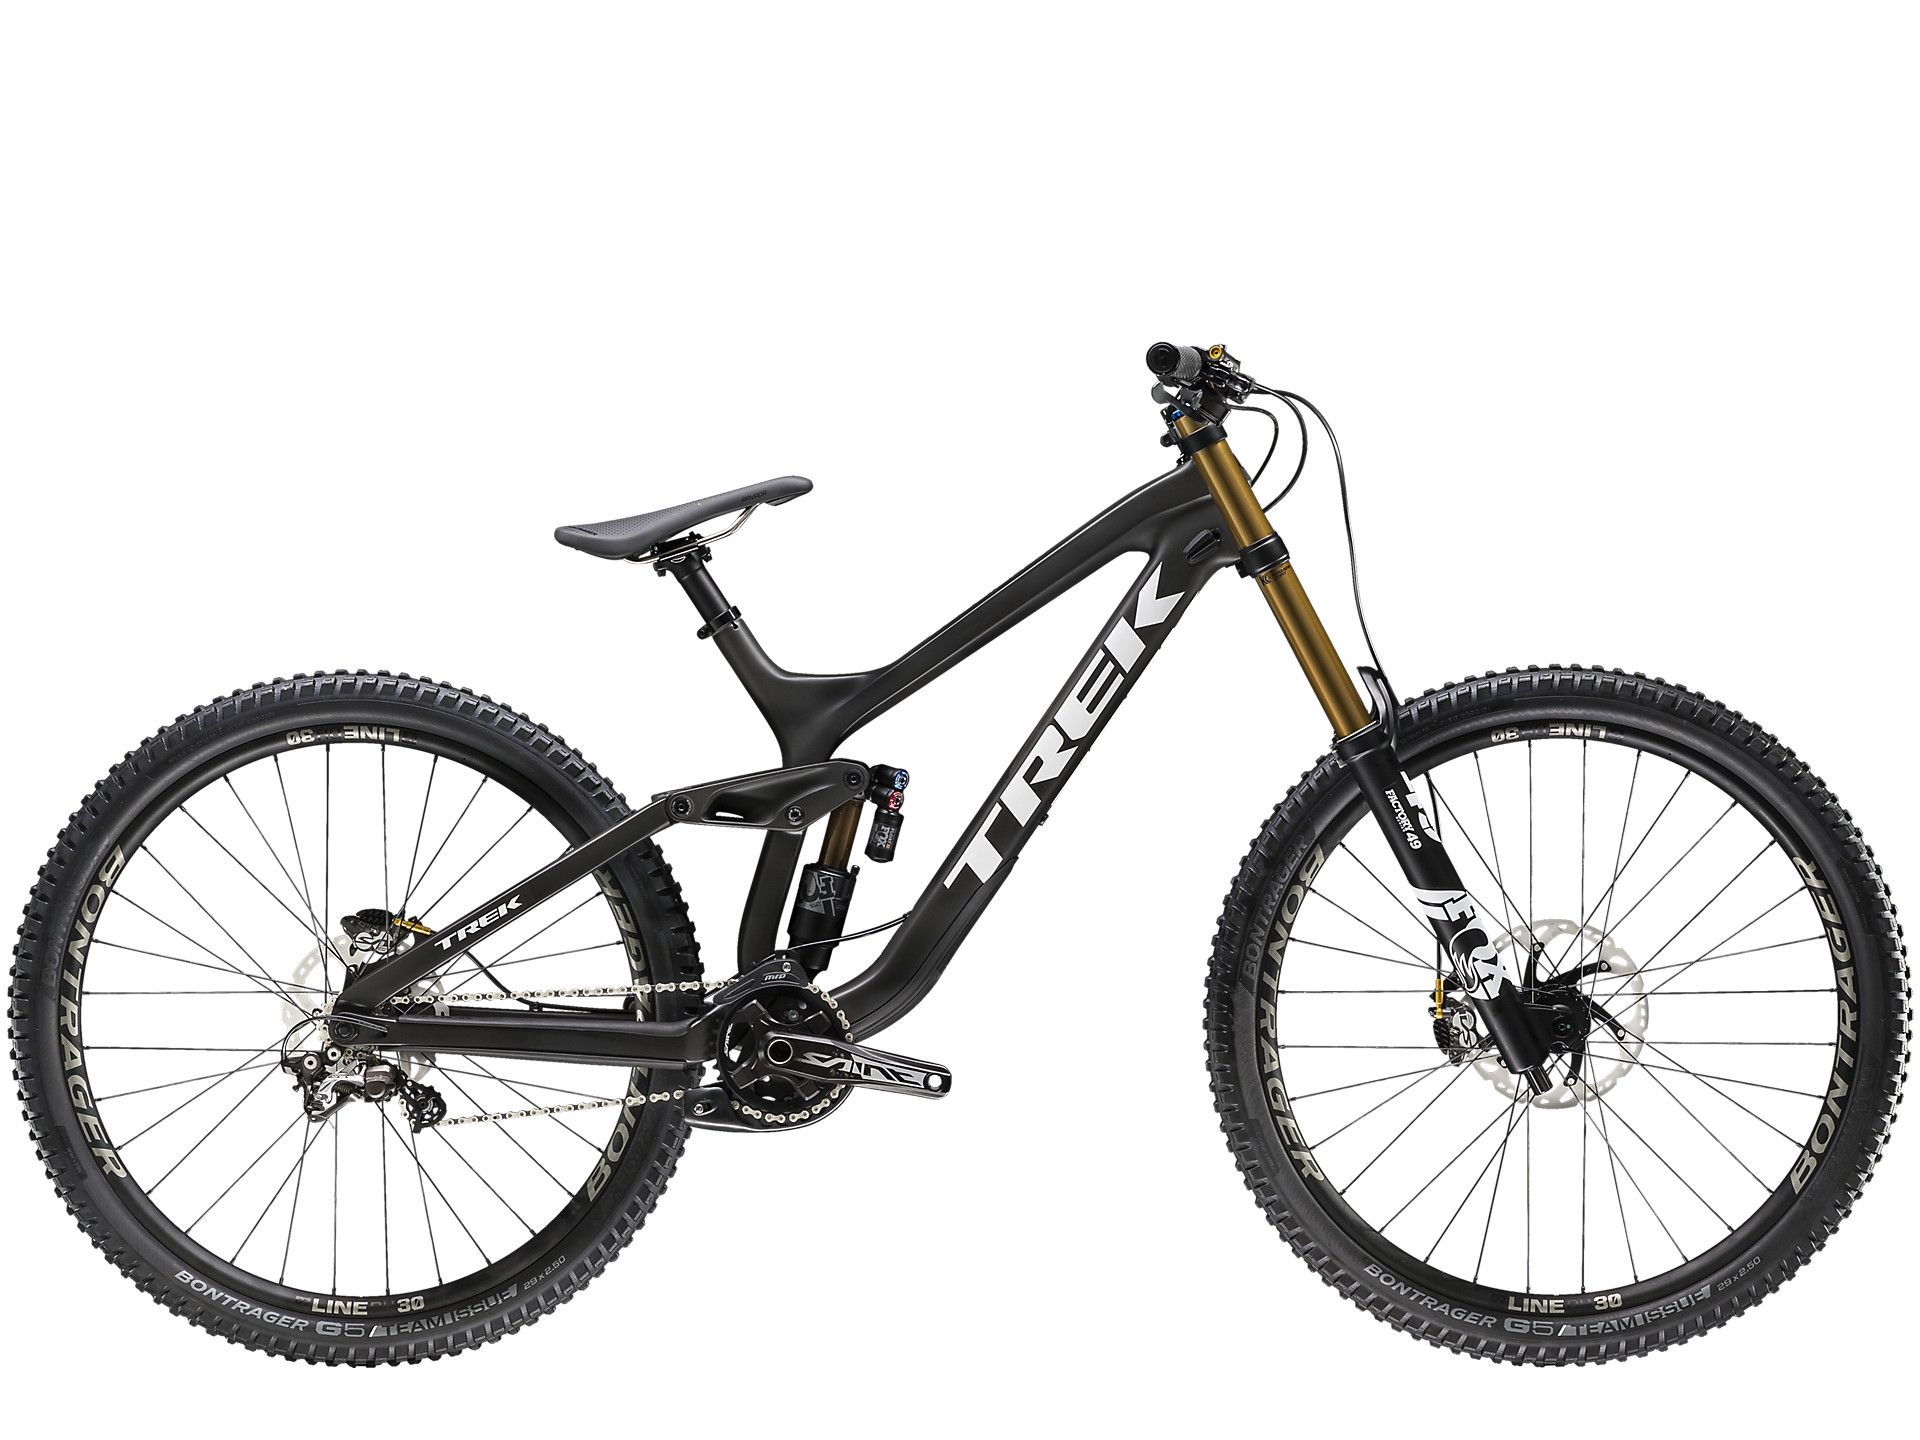 c75b6cb8e2a Downhill mountain bikes | Trek Bikes